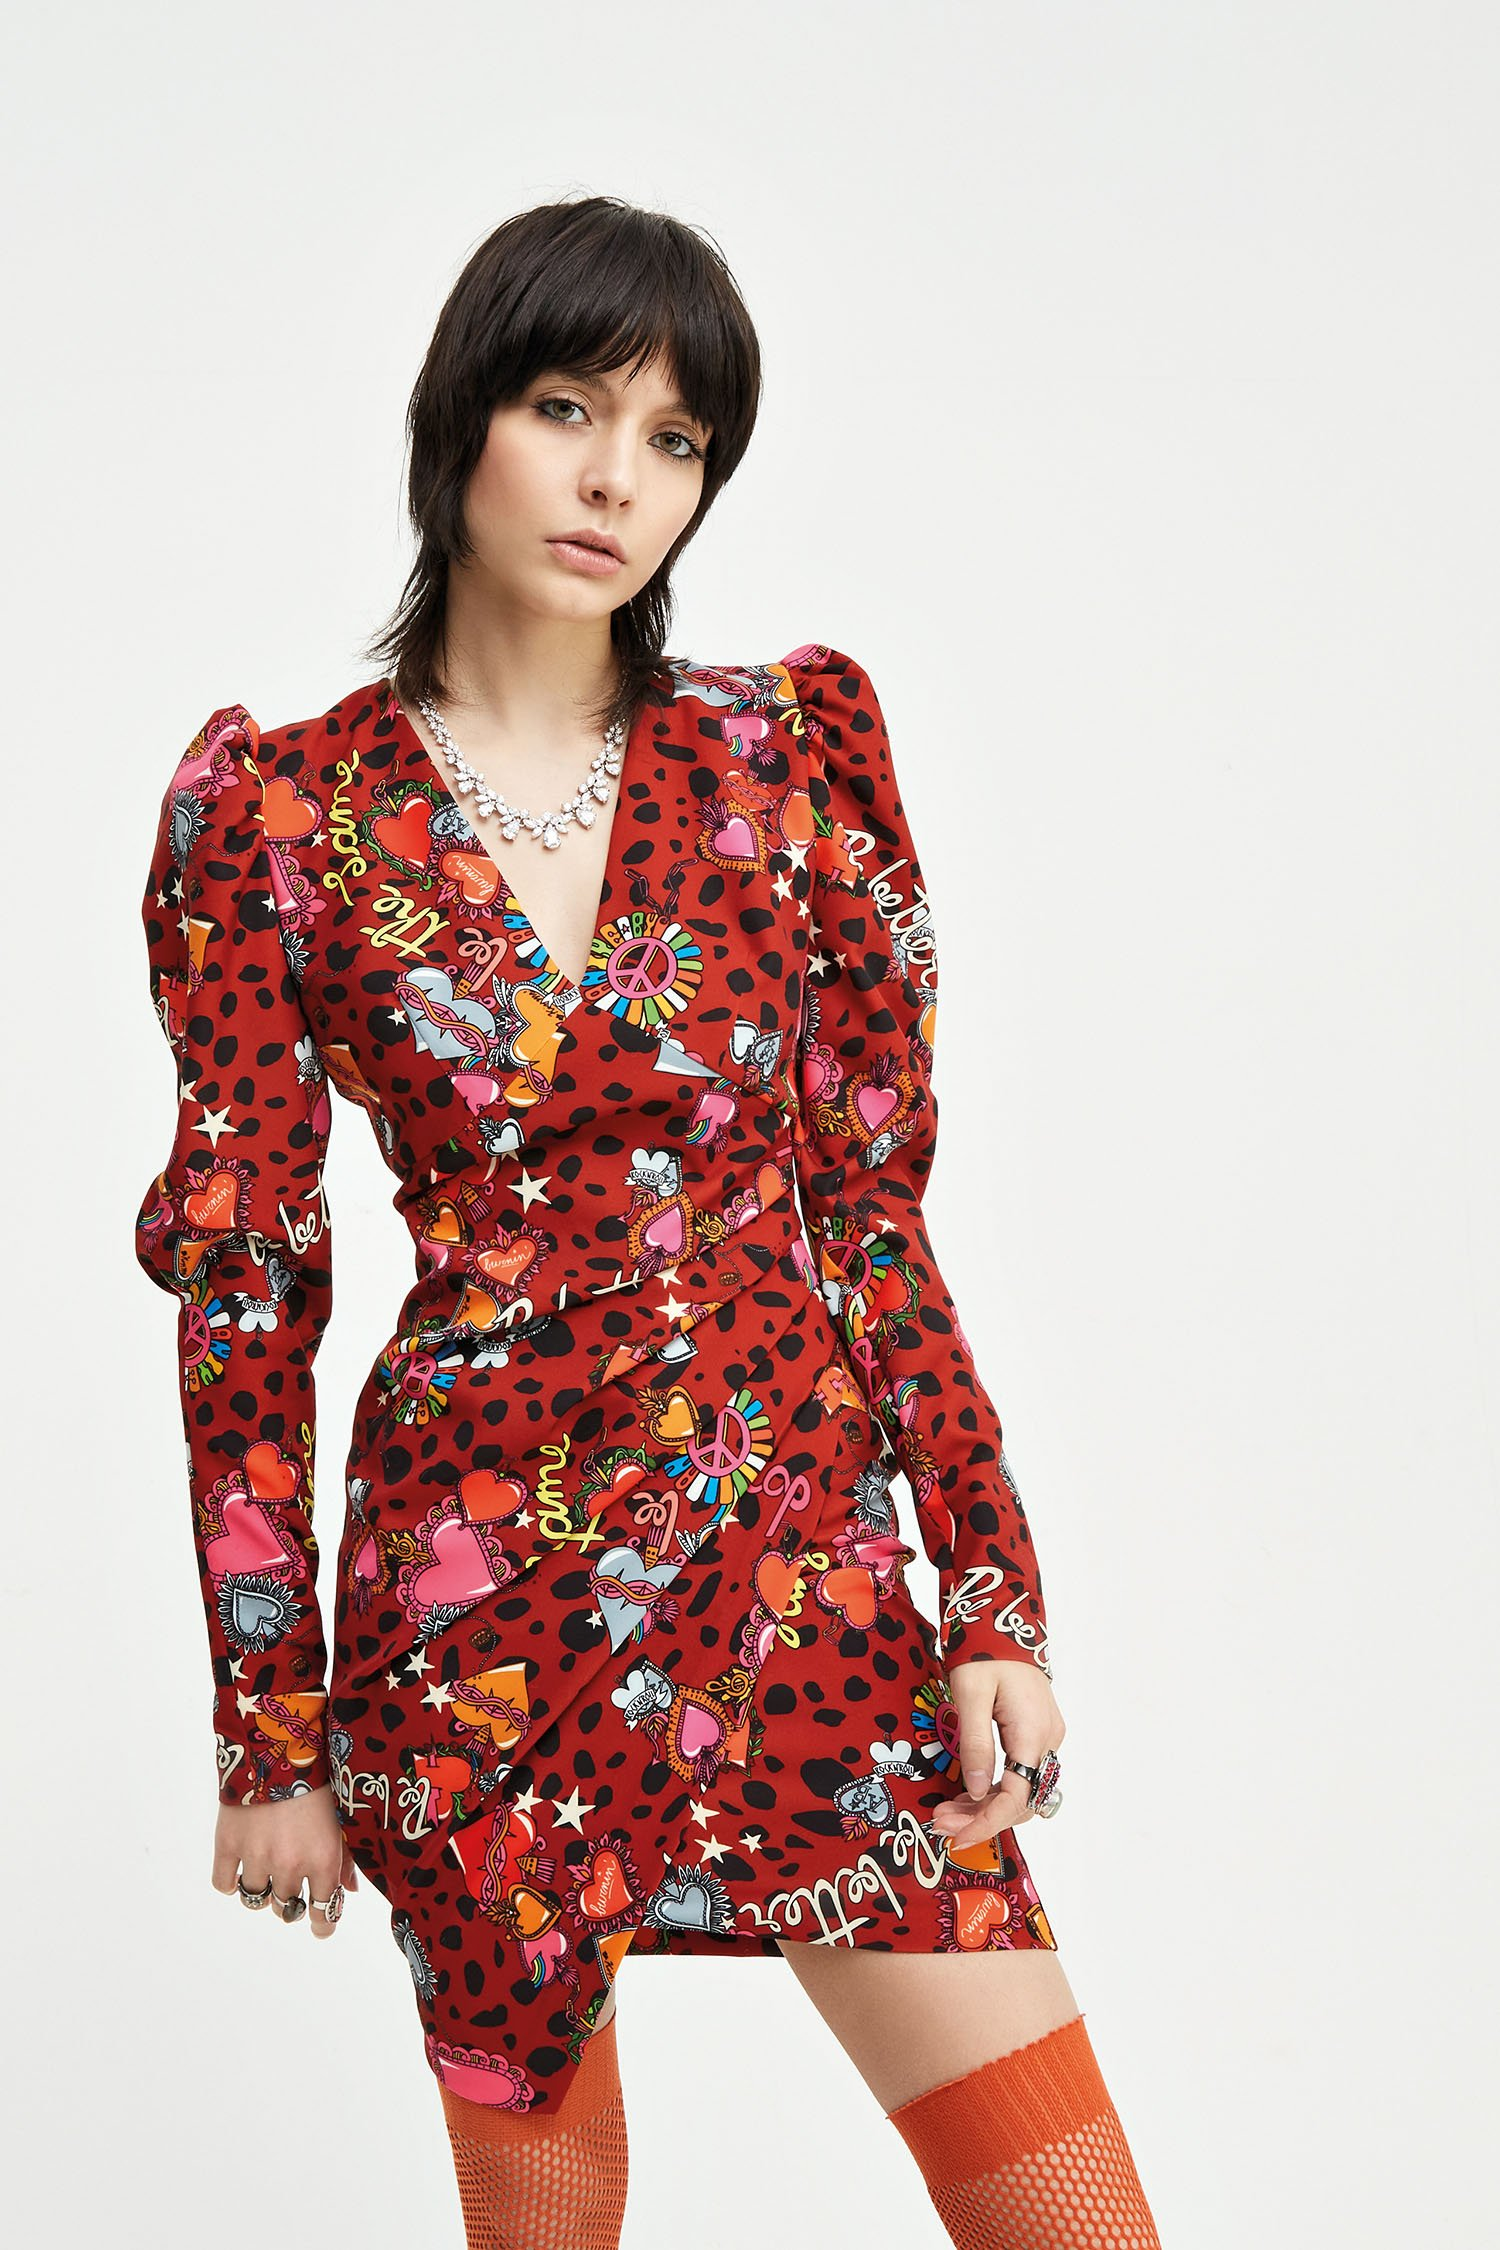 SHOPPING ON LINE ANIYE BY  DRESS LOVE NEW COLLECTION  WOMEN'S FALL/WINTER 2022